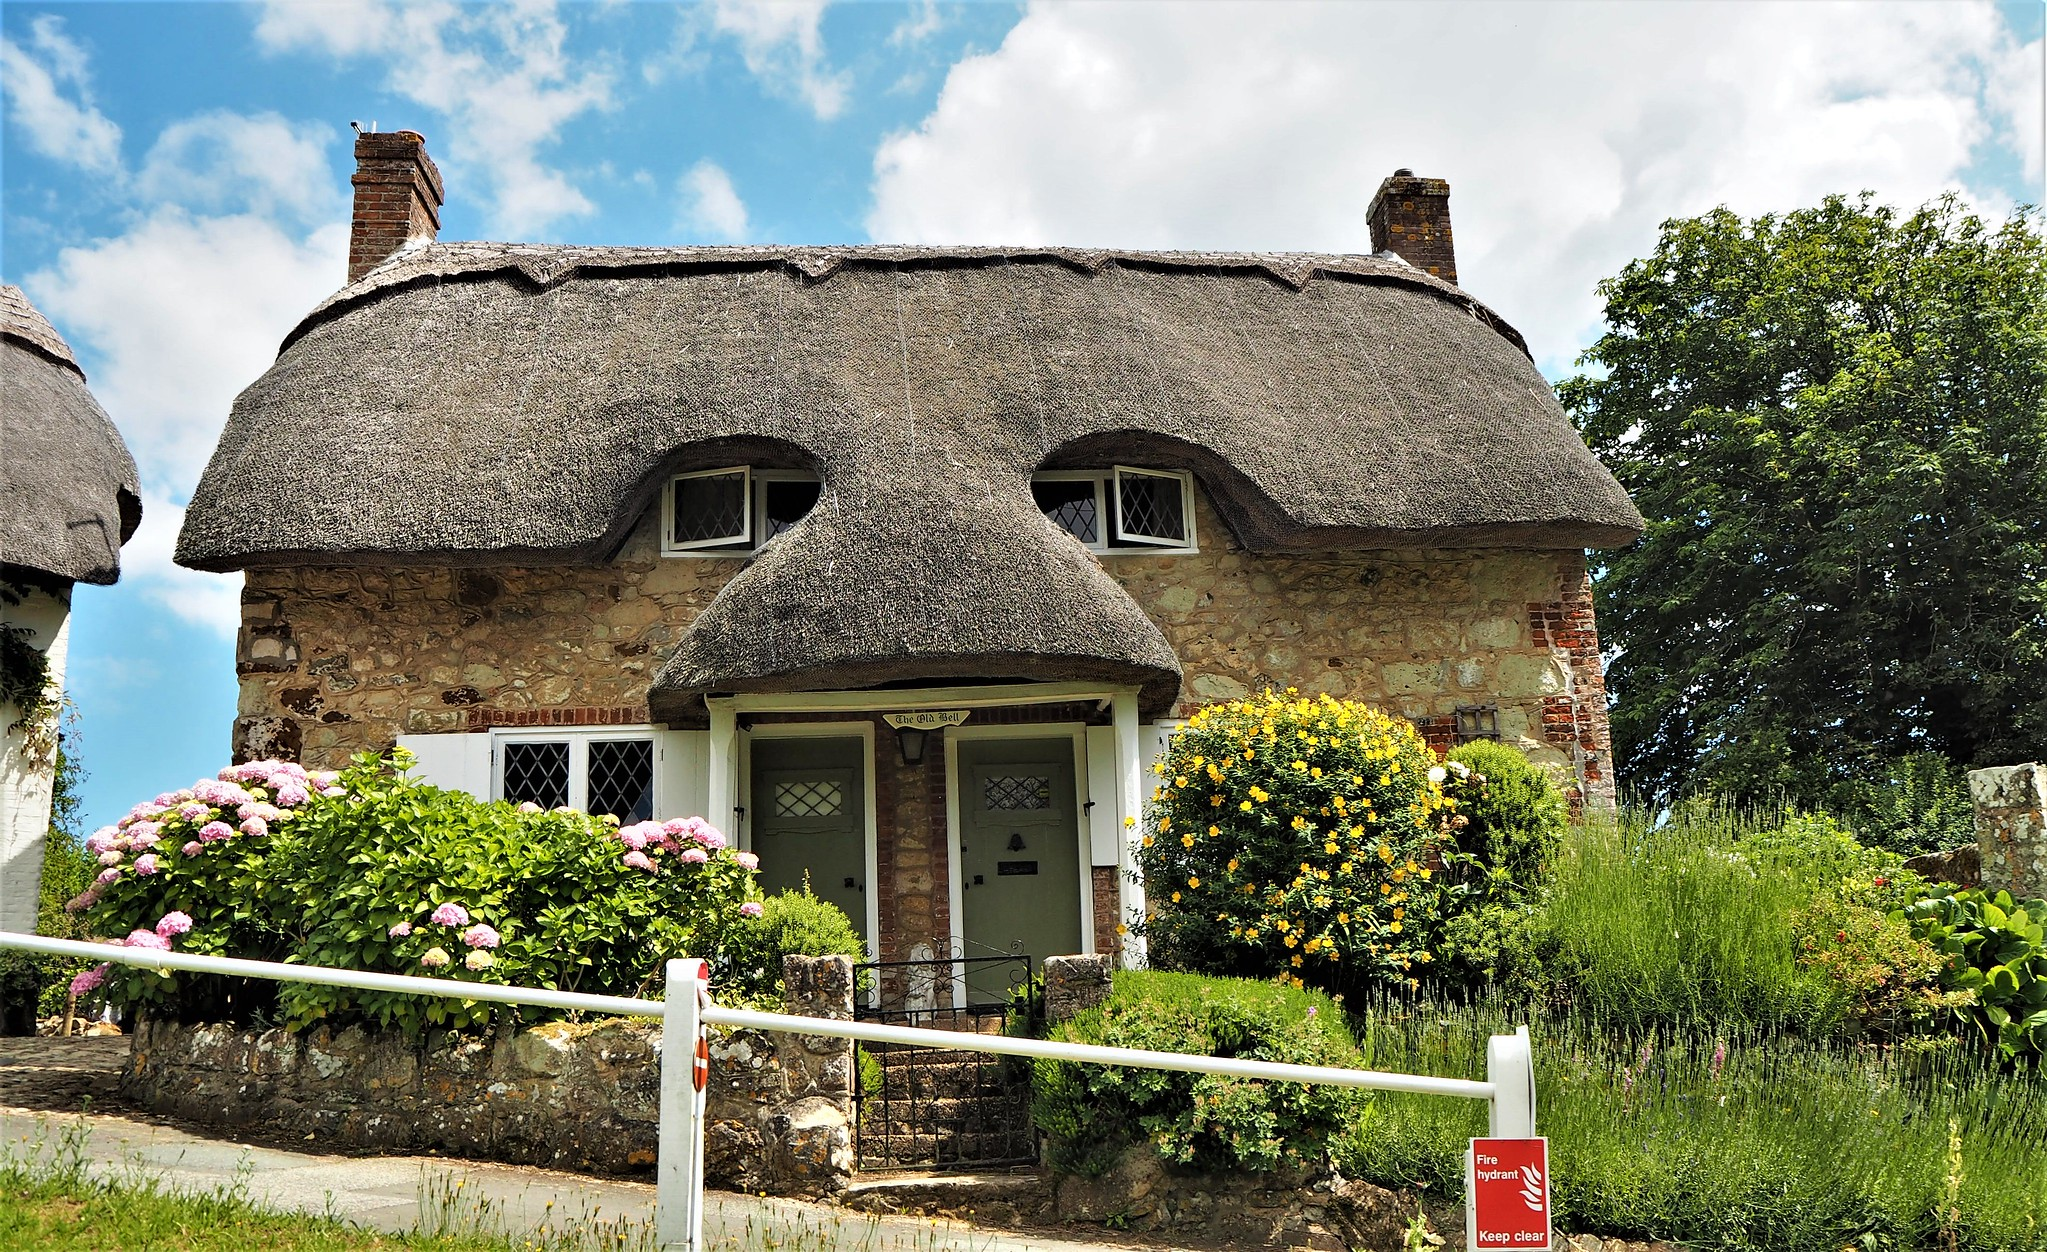 The Perfect Country Cottage,Godshill, Isle of Wight by ManOfYorkshire.jpg